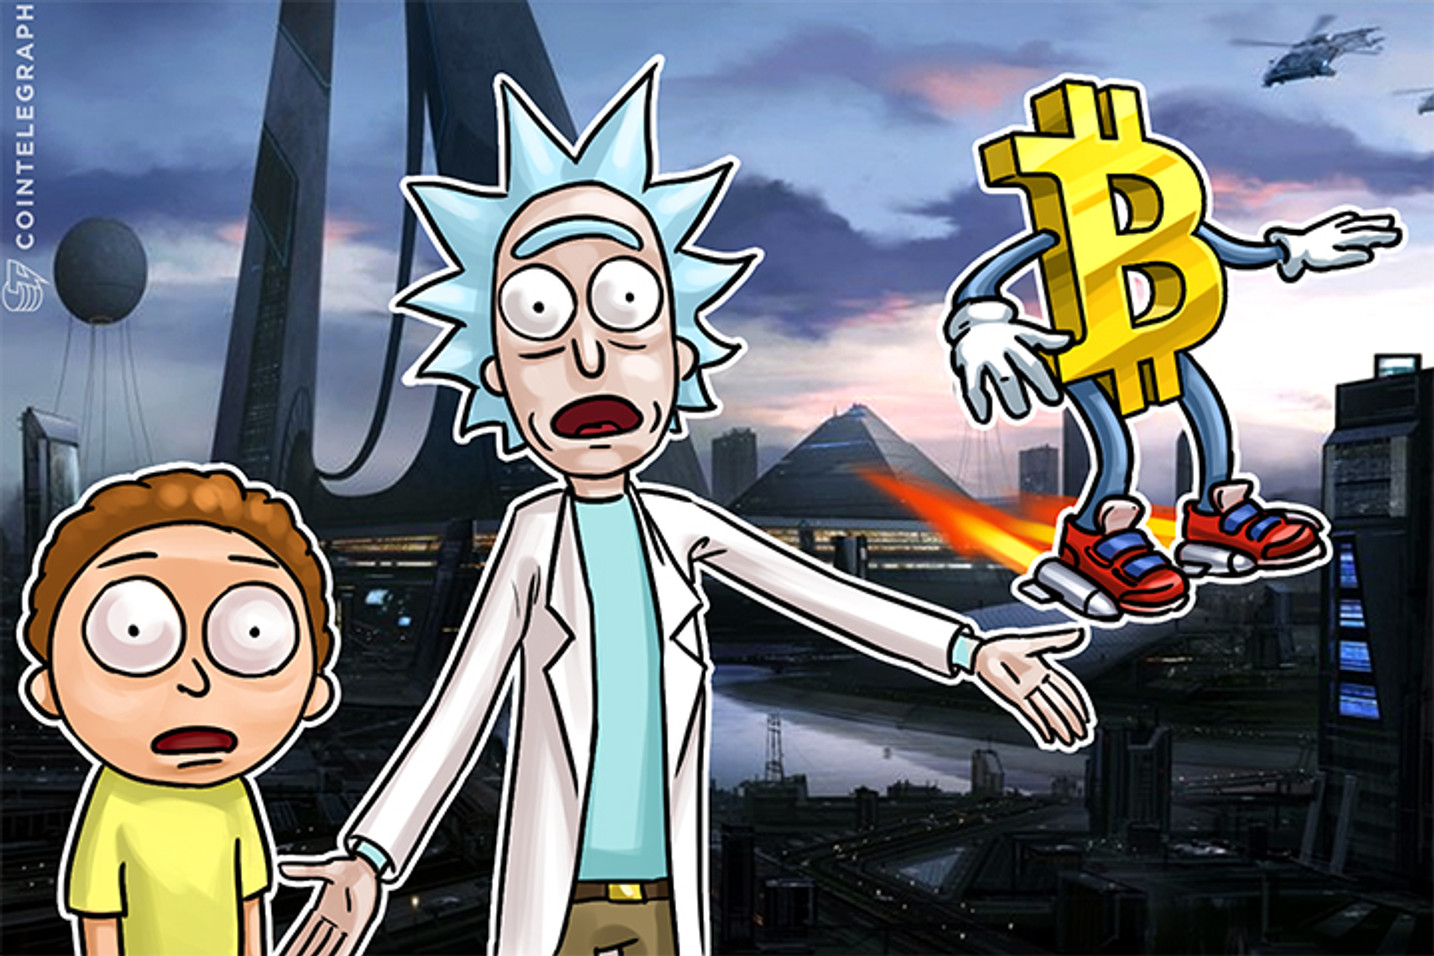 Bitcoin Future: 'Exponential' Price, Centralization 'Avoided' - Beautyon